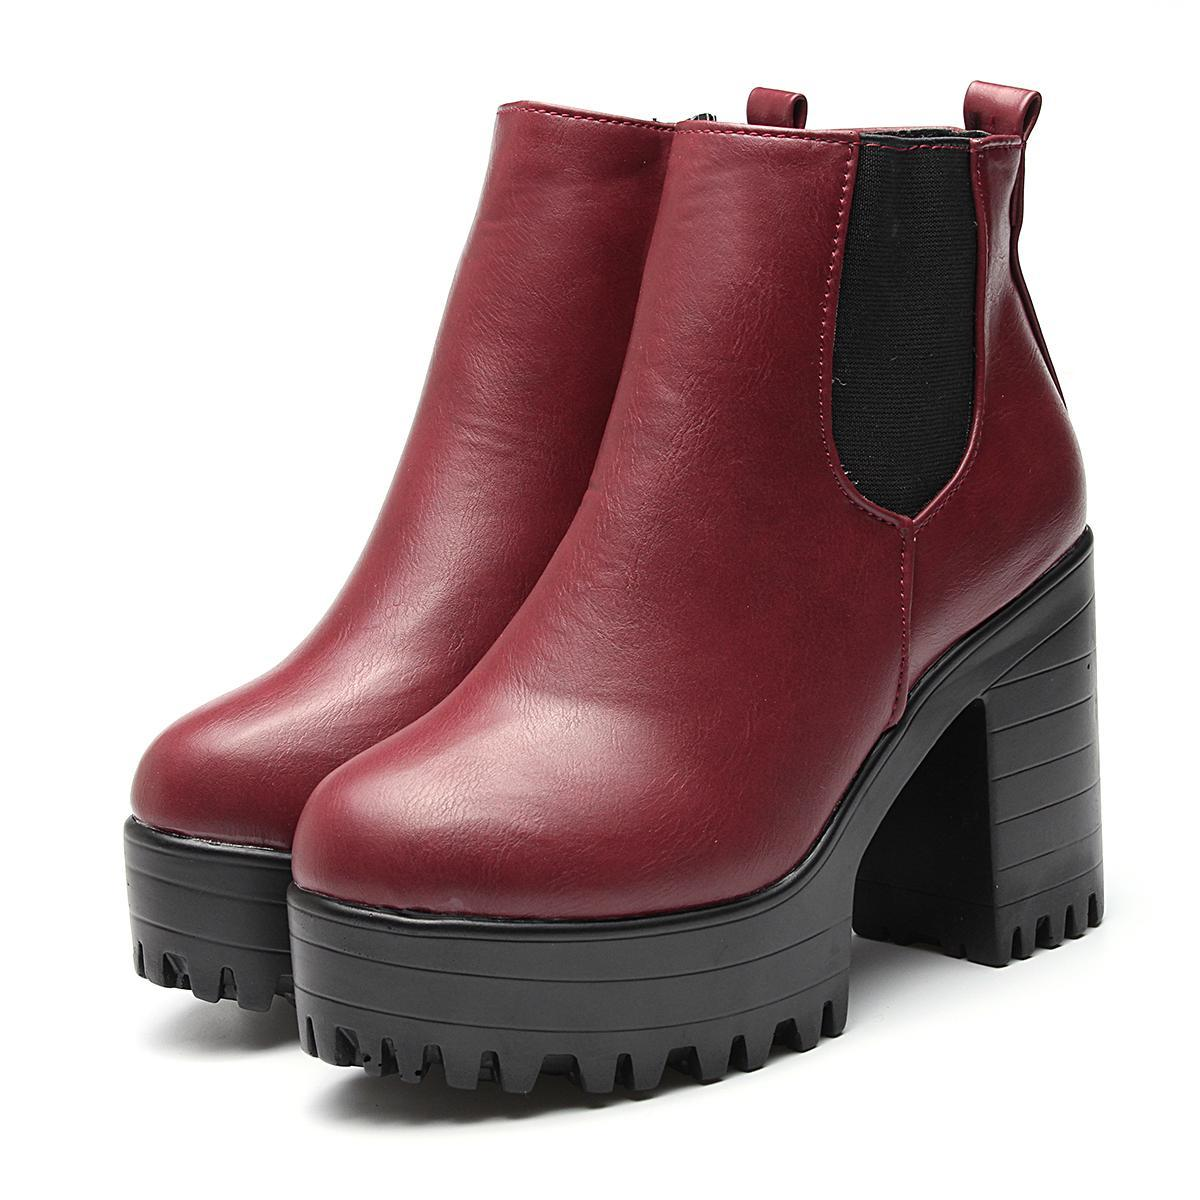 a8f605048 Women Ladies Ankle Boots Chunky Platforms Block High Heels Zipper Shoes New